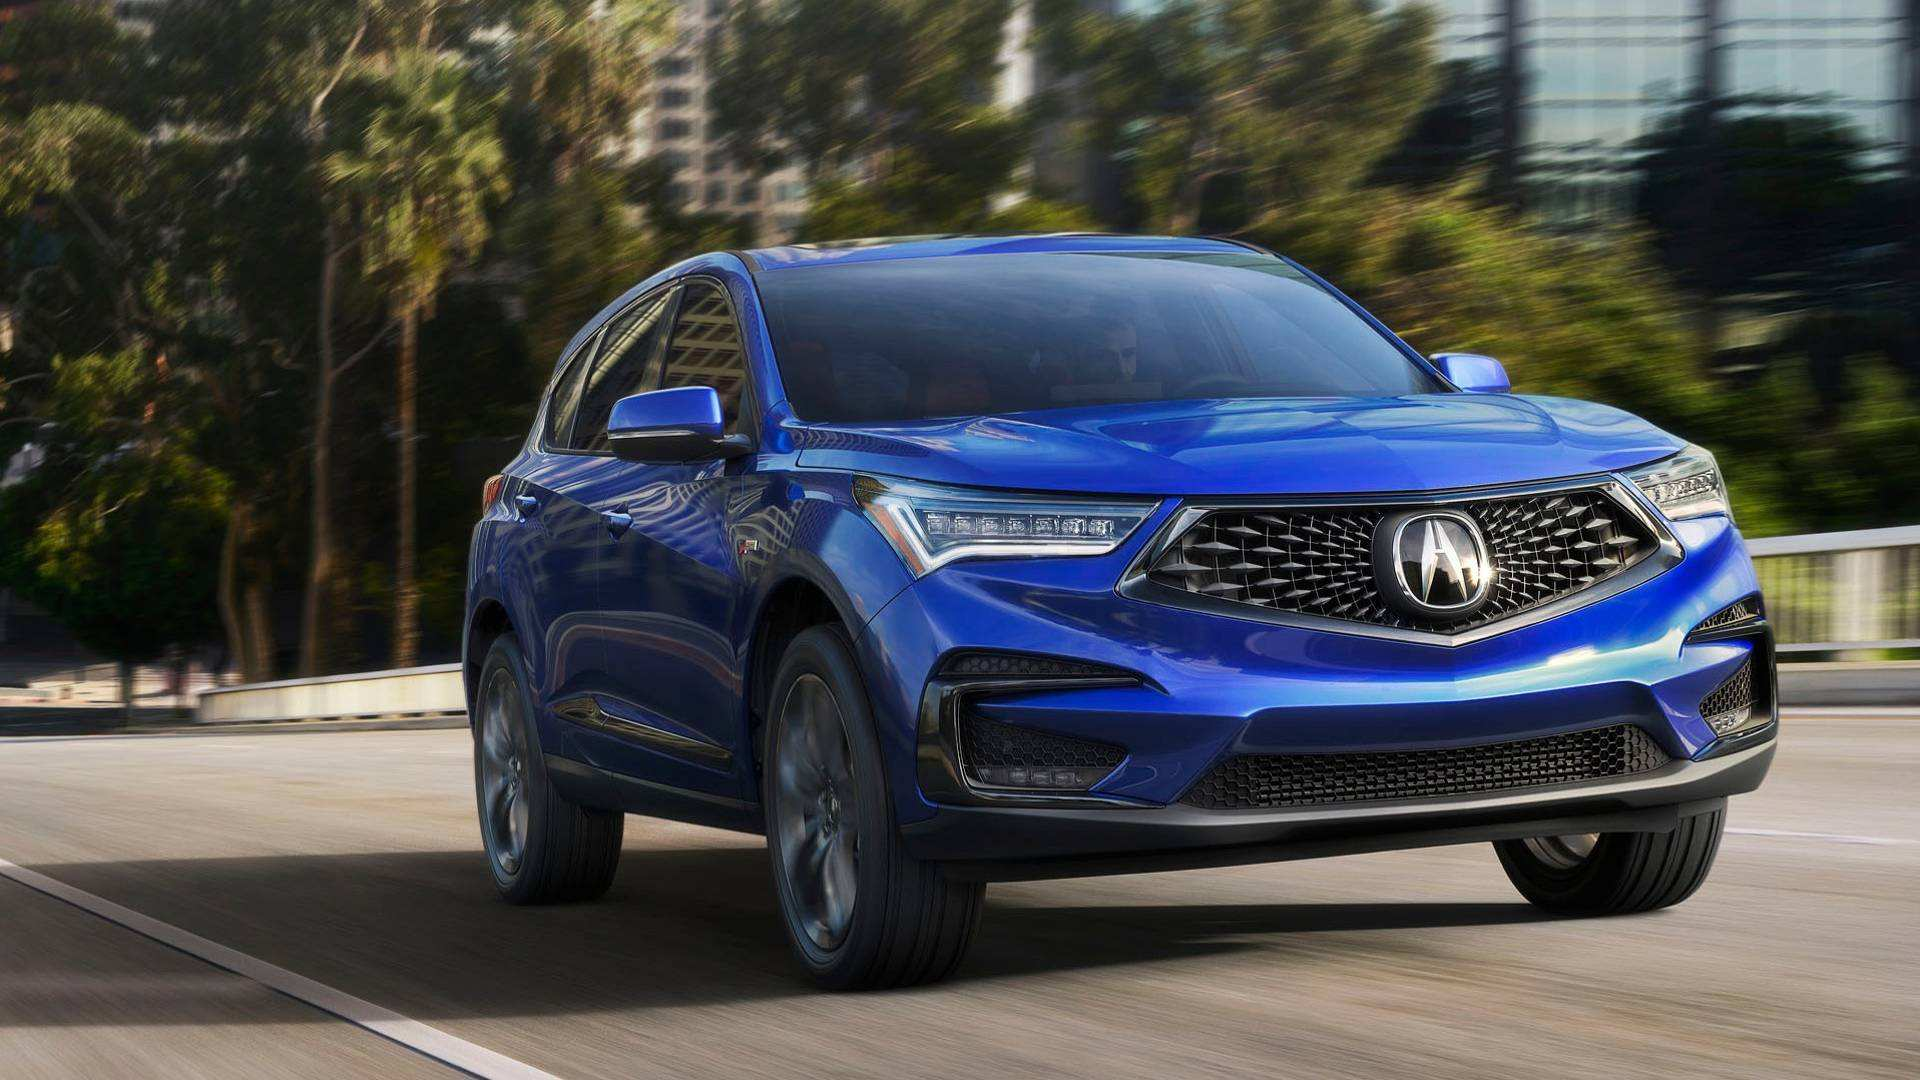 13 Gallery of New Rdx Acura 2019 Price Specs Prices by New Rdx Acura 2019 Price Specs